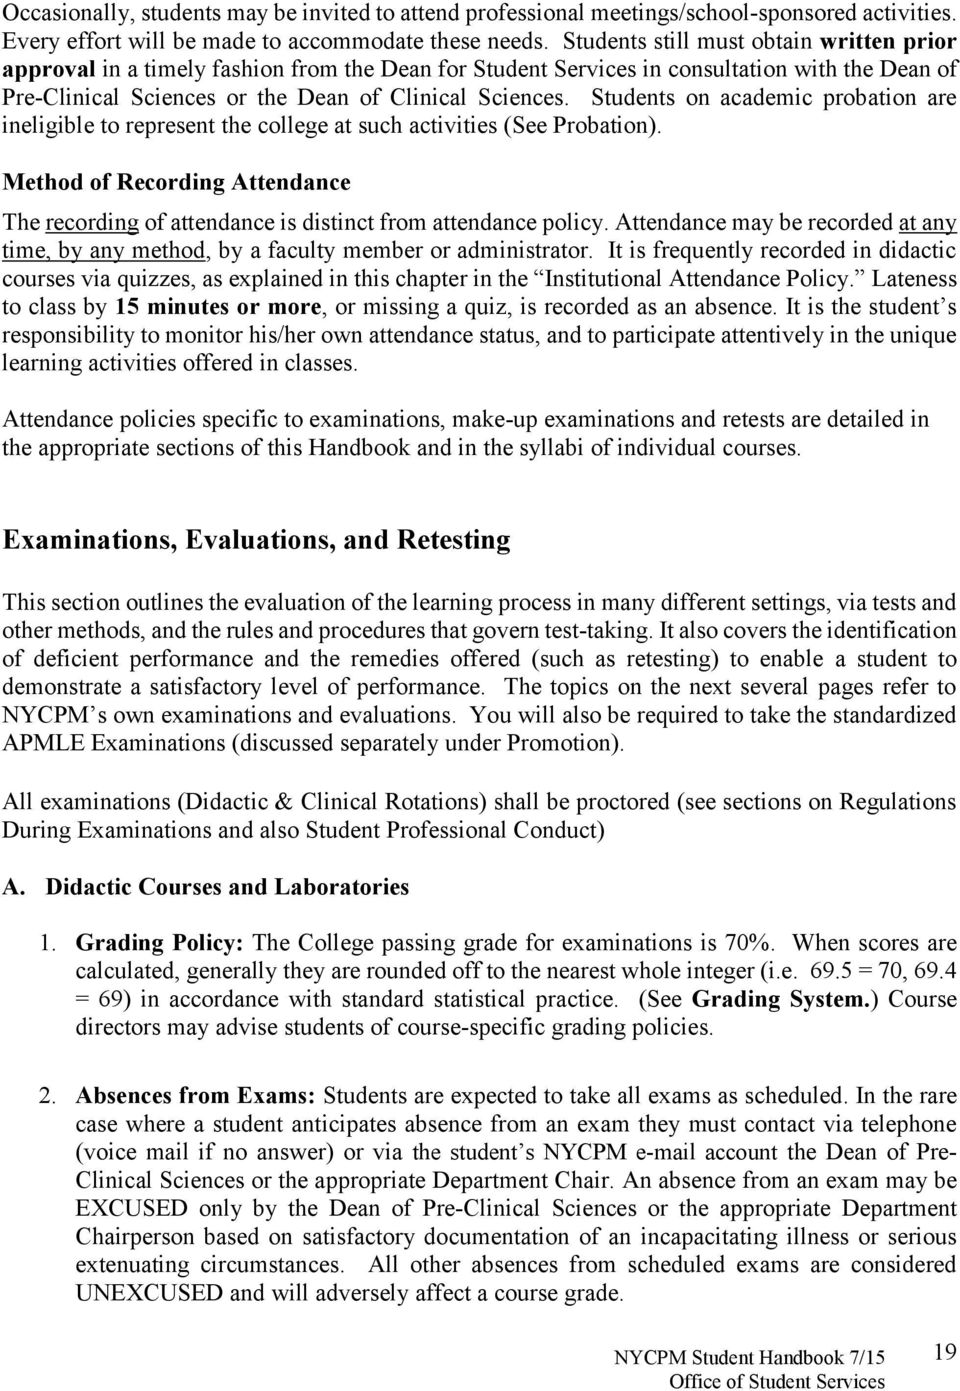 Students on academic probation are ineligible to represent the college at such activities (See Probation).